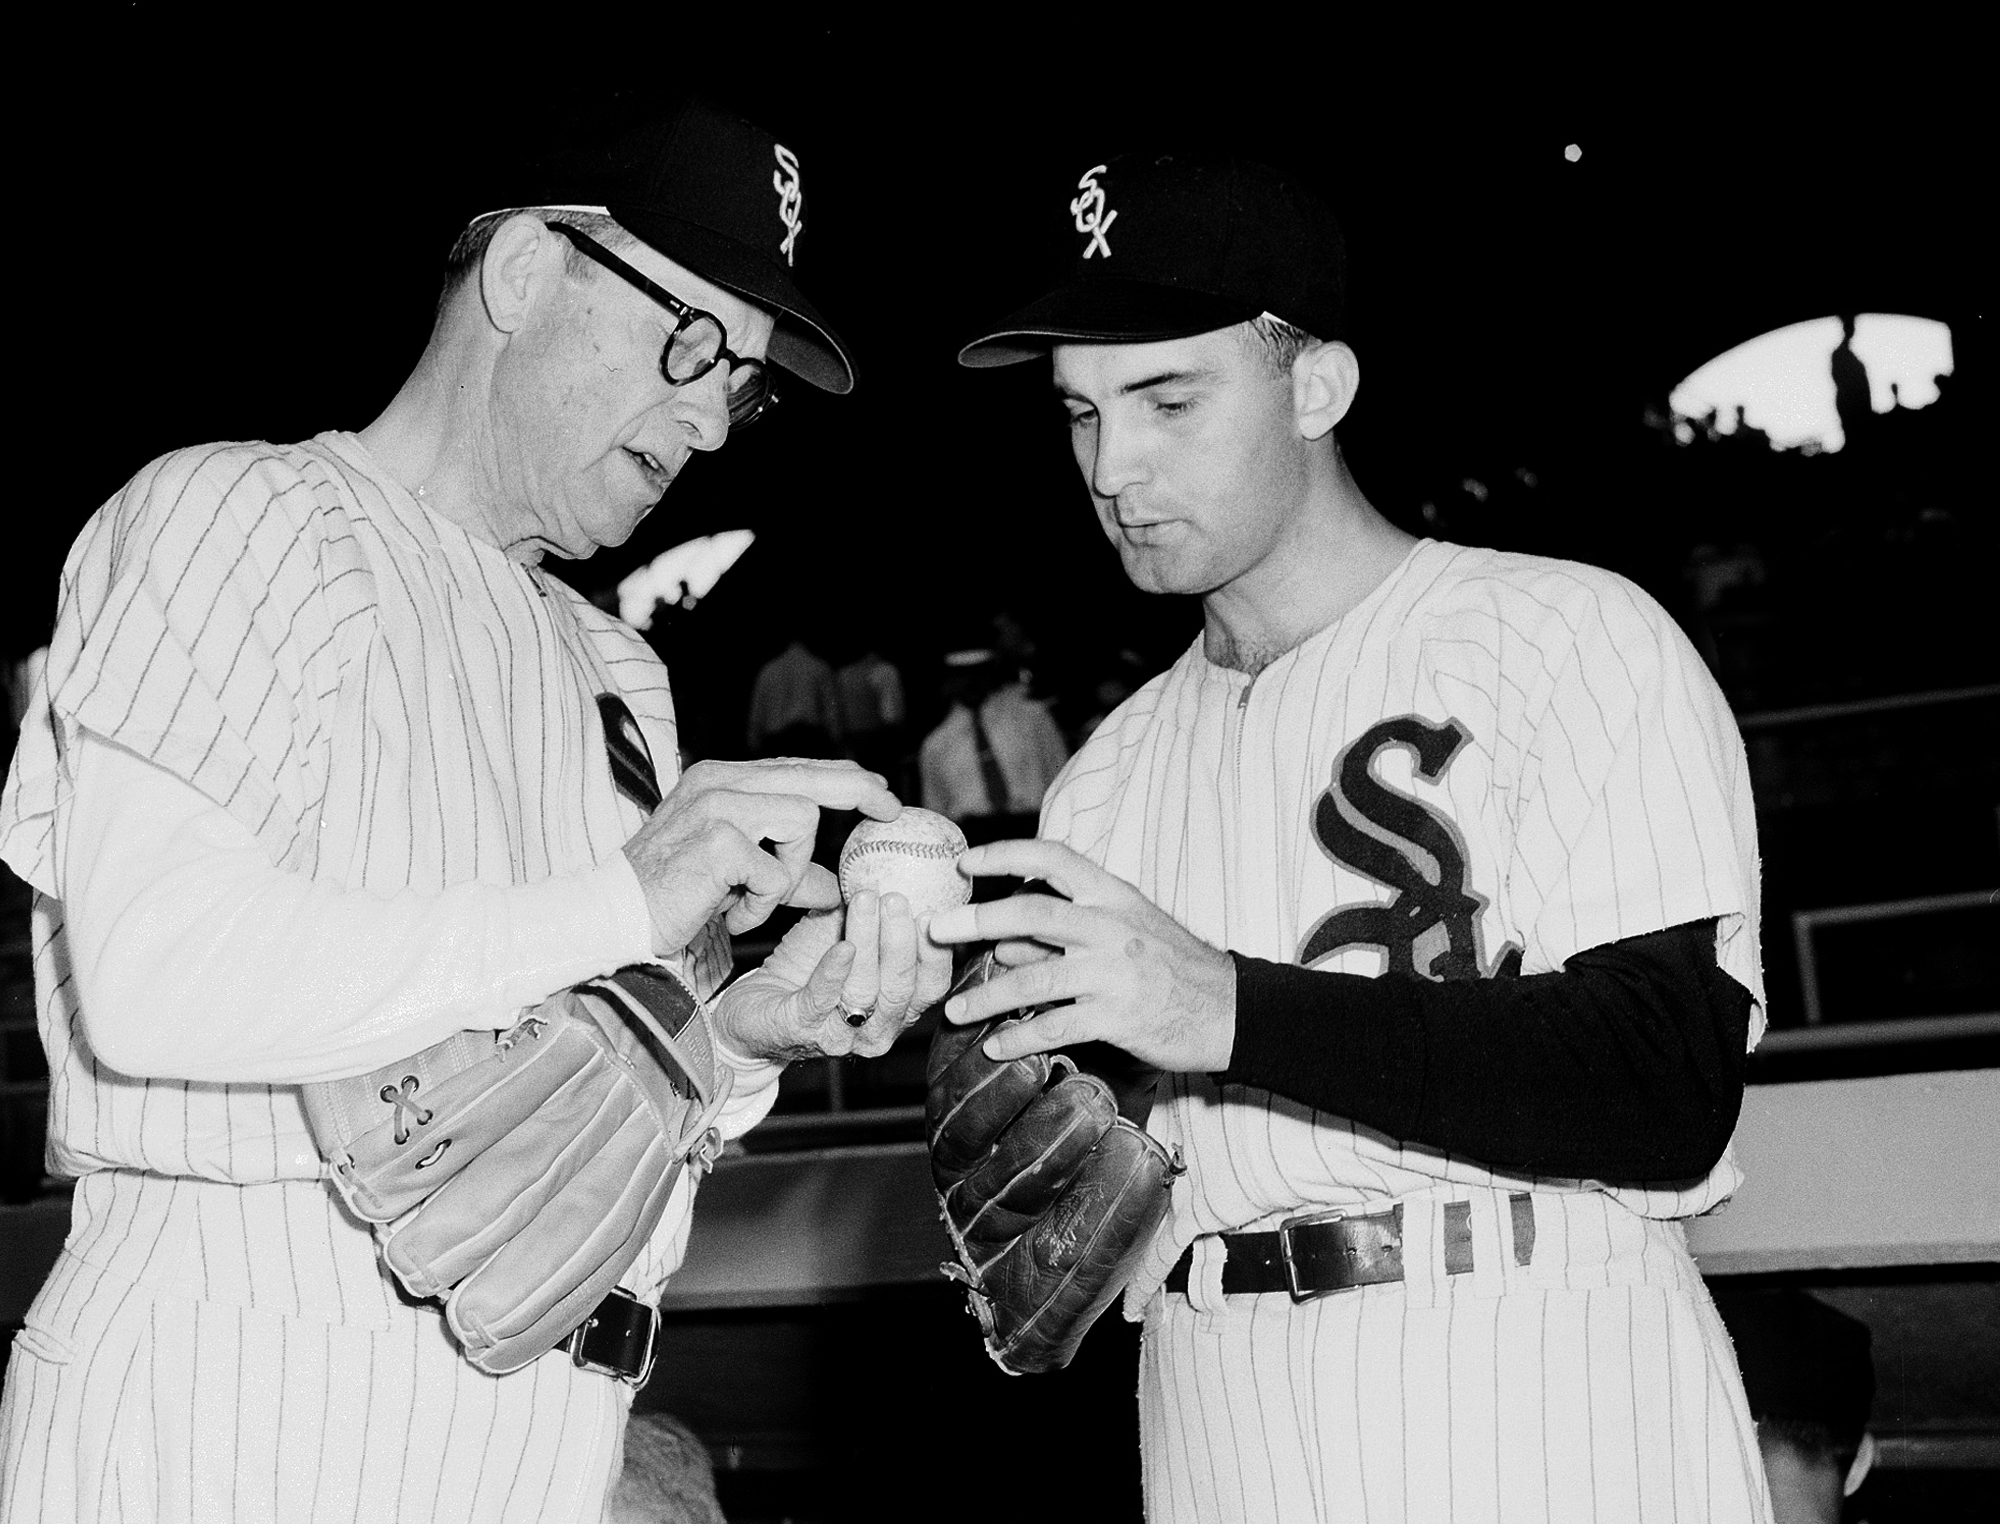 FILE - In this Aug. 10, 1954 file photo, Chicago White Sox pitcher Billy Pierce, right, compares grips with former White Sox Ed Walsh, 73, as an all-star team of White Sox old timers gathered to play an exhibition game before a White Sox-Baltimore Orioles